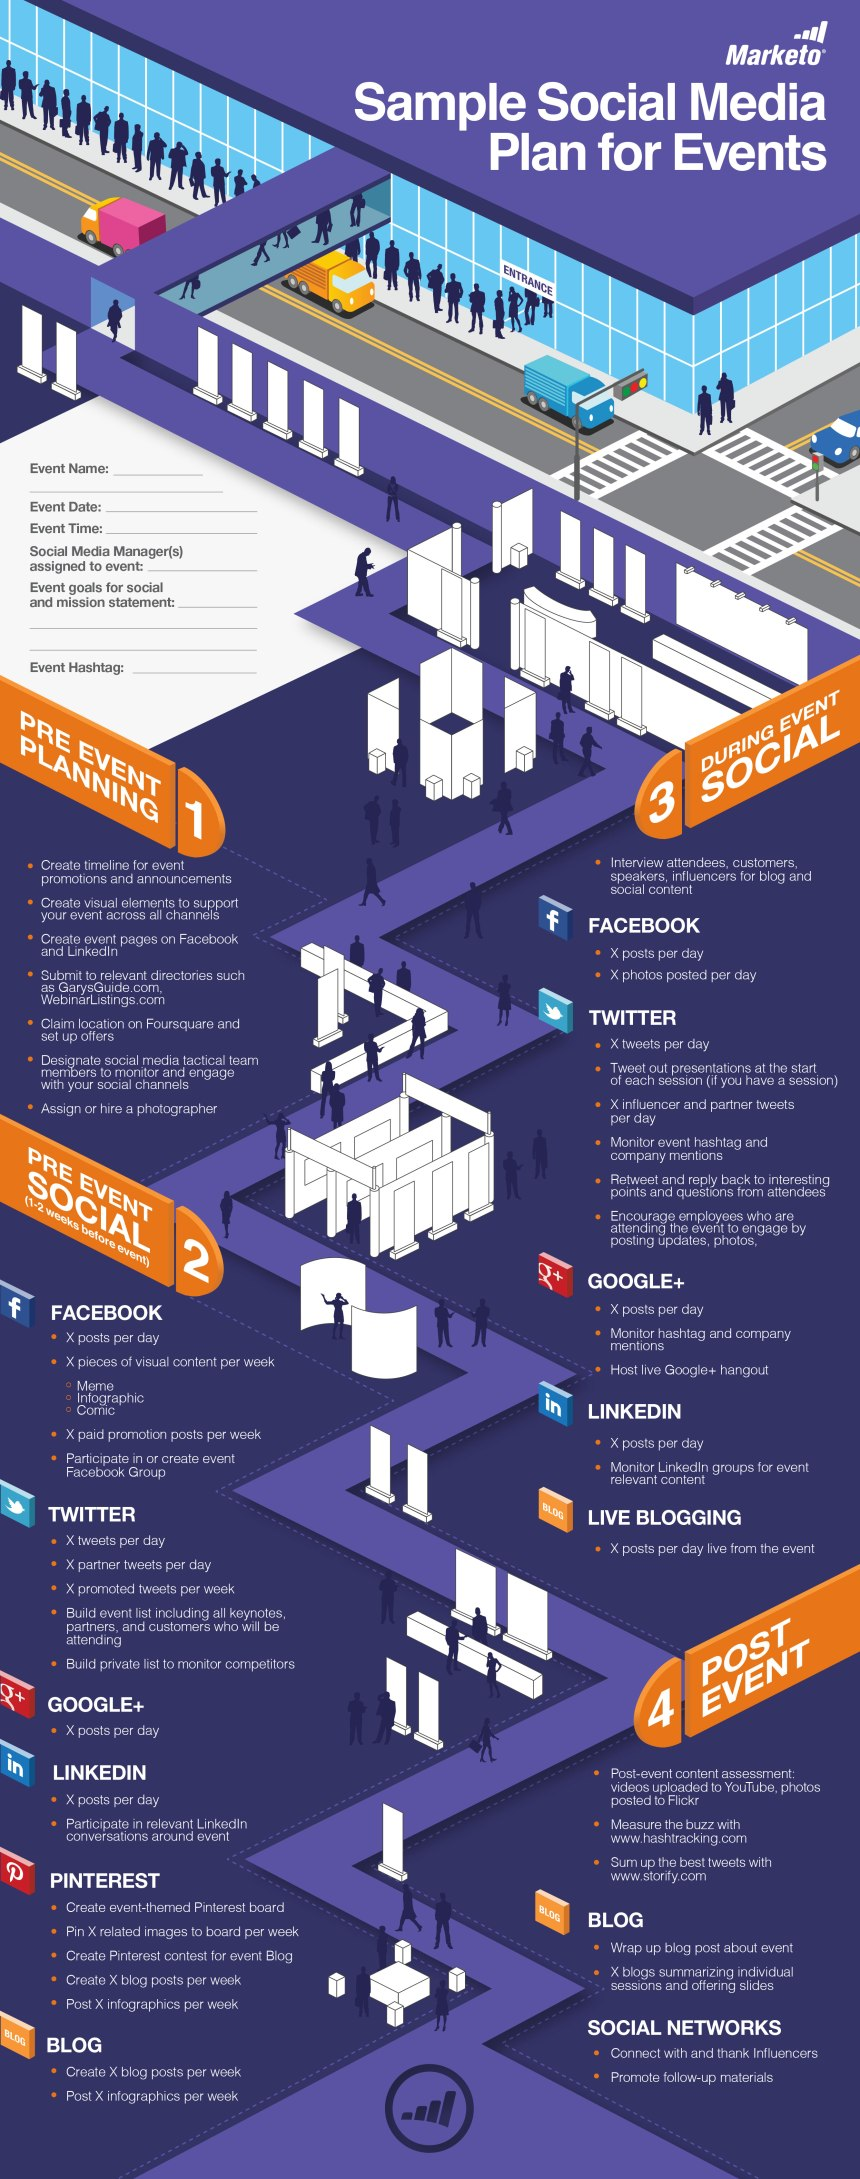 Plan de Social Media para eventos